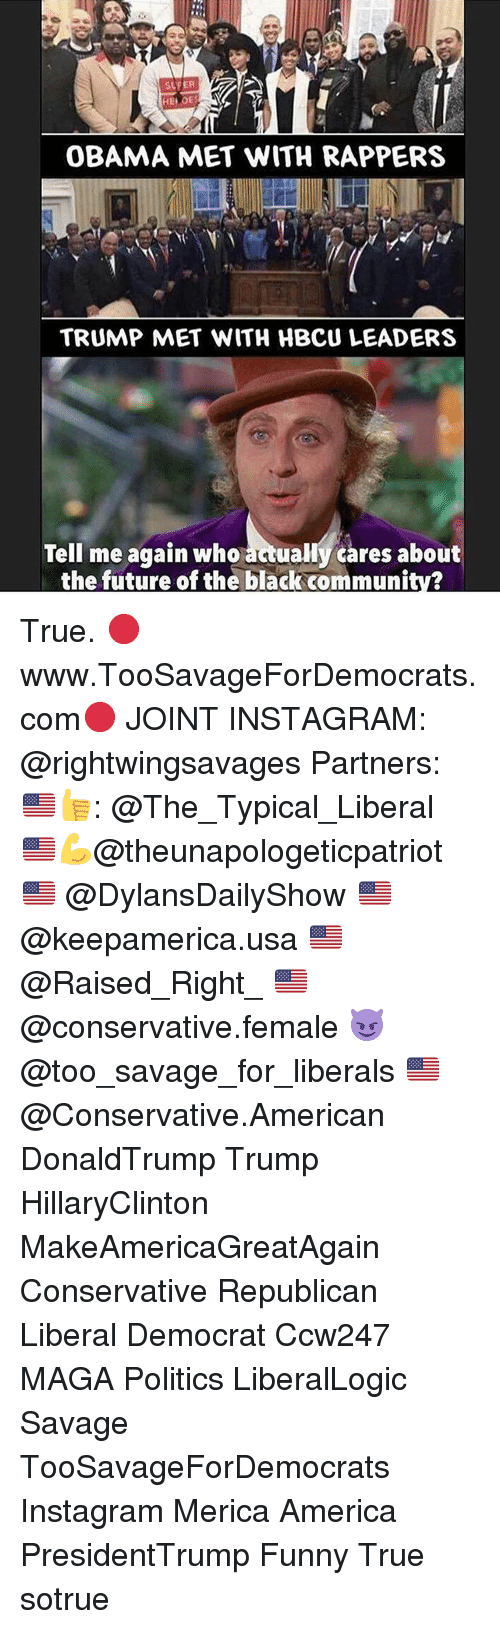 Memes, 🤖, and Usa: OBAMA MET WITH RAPPERS  TRUMP MET WITH HBCU LEADERS  Tell me again who  actually cares about  the future of the black community? True. 🔴www.TooSavageForDemocrats.com🔴 JOINT INSTAGRAM: @rightwingsavages Partners: 🇺🇸👍: @The_Typical_Liberal 🇺🇸💪@theunapologeticpatriot 🇺🇸 @DylansDailyShow 🇺🇸 @keepamerica.usa 🇺🇸@Raised_Right_ 🇺🇸@conservative.female 😈 @too_savage_for_liberals 🇺🇸 @Conservative.American DonaldTrump Trump HillaryClinton MakeAmericaGreatAgain Conservative Republican Liberal Democrat Ccw247 MAGA Politics LiberalLogic Savage TooSavageForDemocrats Instagram Merica America PresidentTrump Funny True sotrue